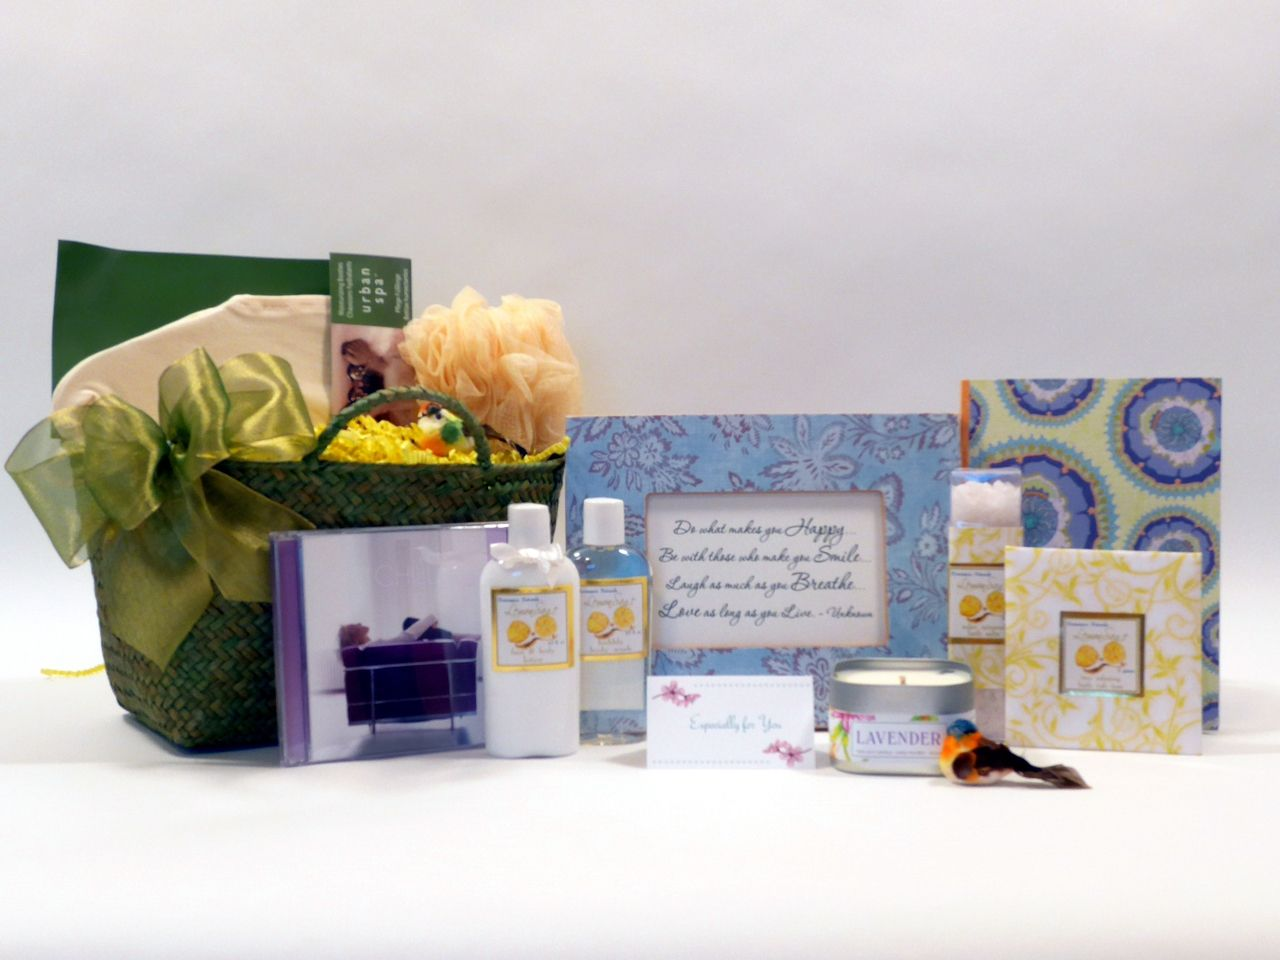 New item added to our spa collection - now on sale 20% off(http://www.thoughtfulpresence.com/spa-gift-basket-indulge-and-inspire/)